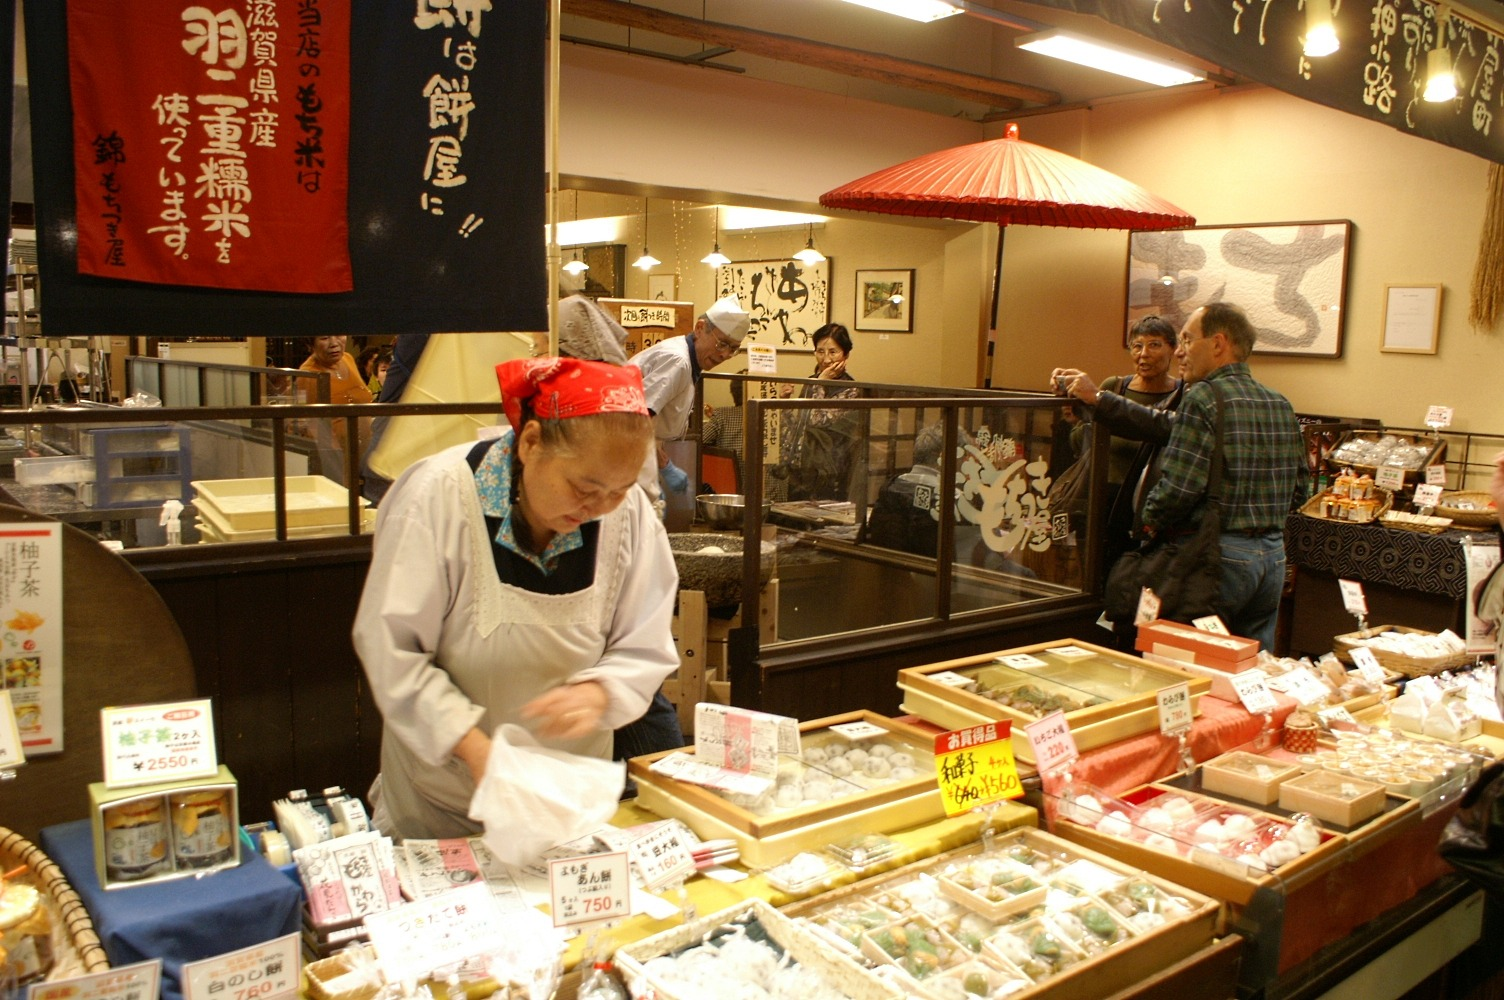 https://upload.wikimedia.org/wikipedia/commons/9/9e/A135_Japan_Kyoto_All_foods_for_sale_(4764436486).jpg